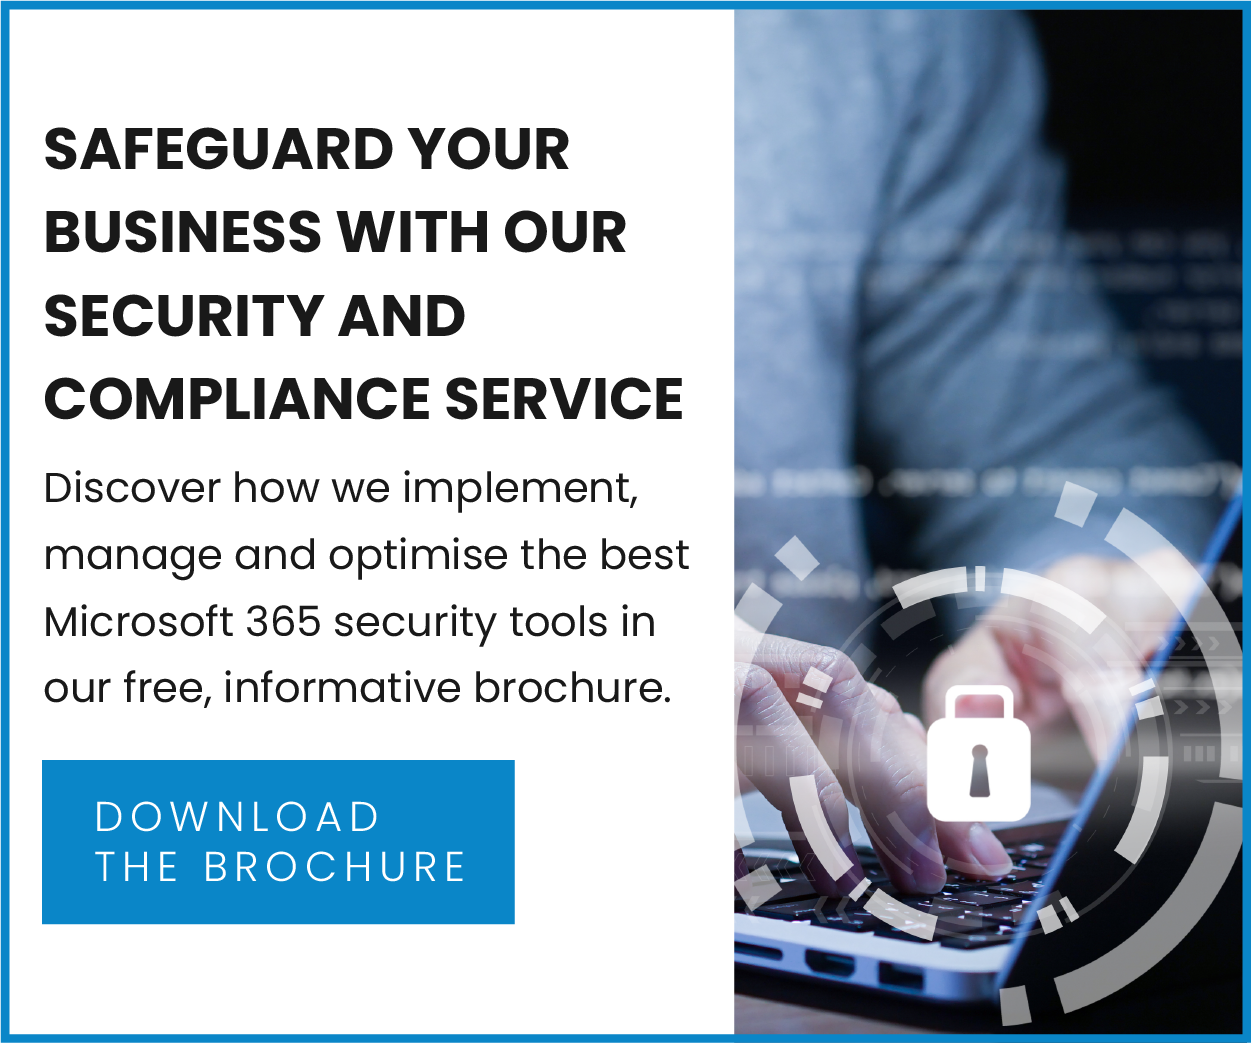 Security and compliance brochure CTA